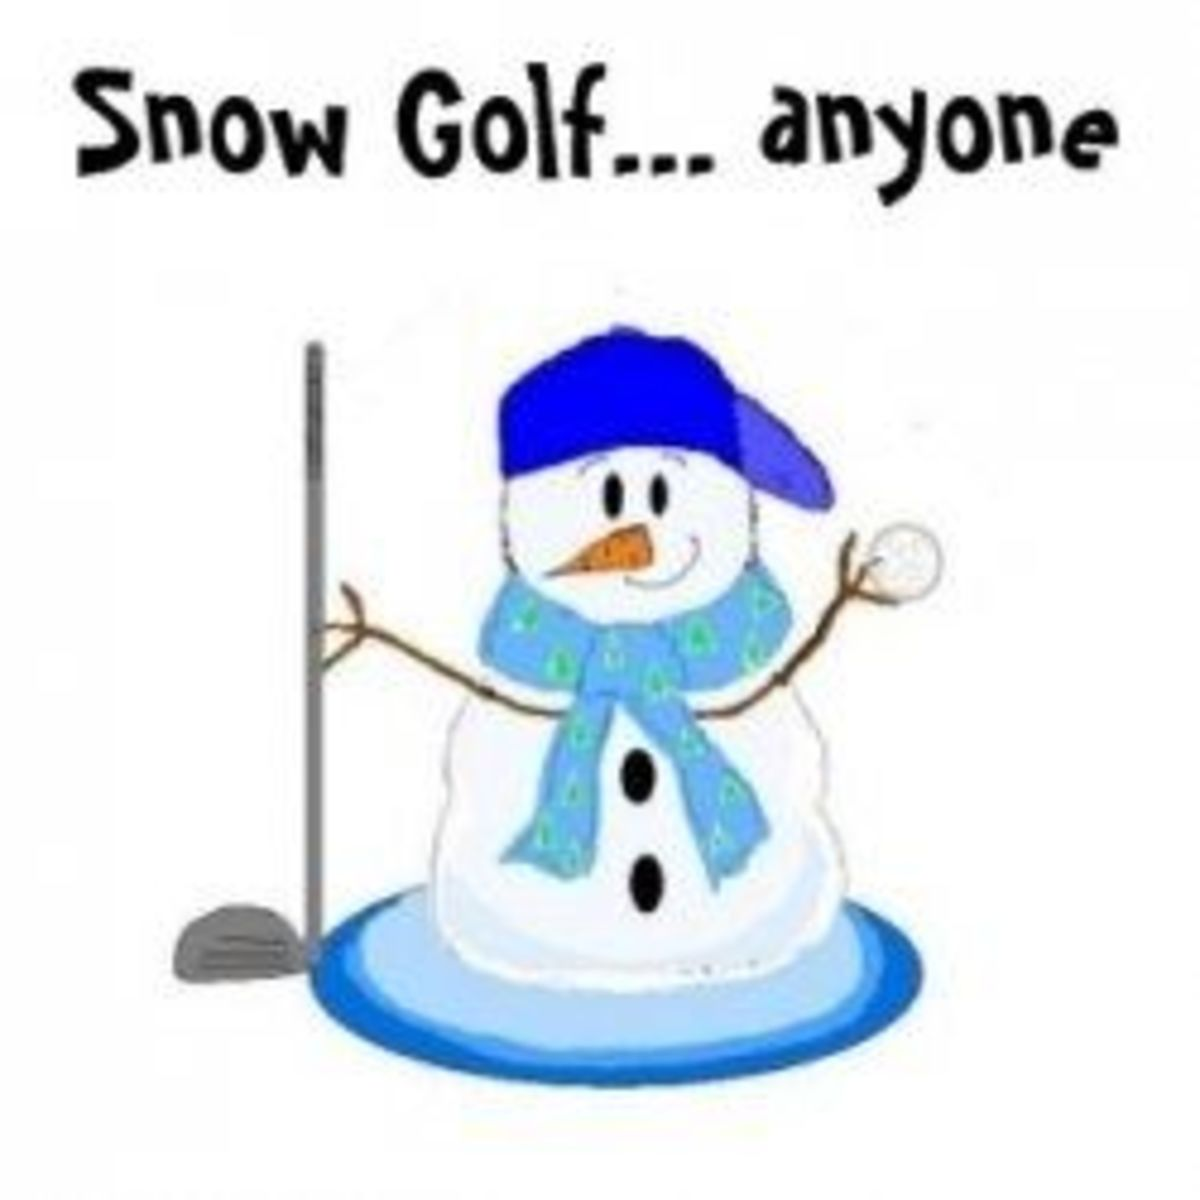 Keep Warm on Golf Course - How to Golf When Cold